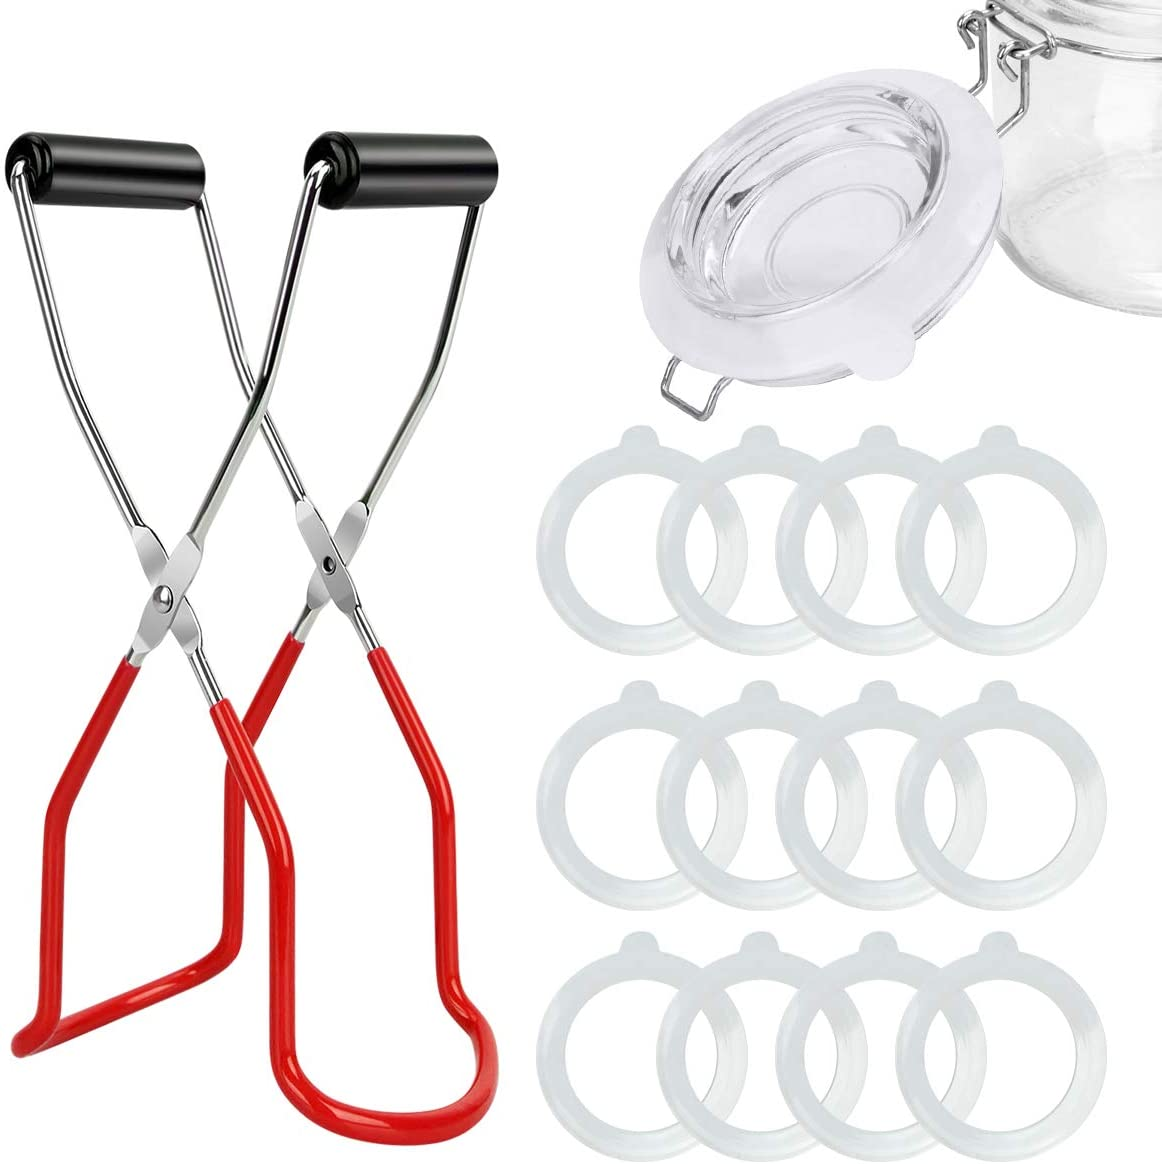 Canning Jar Lifter Tongs and 12pcs Silicone Gasket Seals Replacement Leakproof Airtight Canning Sealing Rings 3.75Inch Kit for Kitchen Canning Mason Jars Lids Canning Supplies Accessories (Red+Clear)